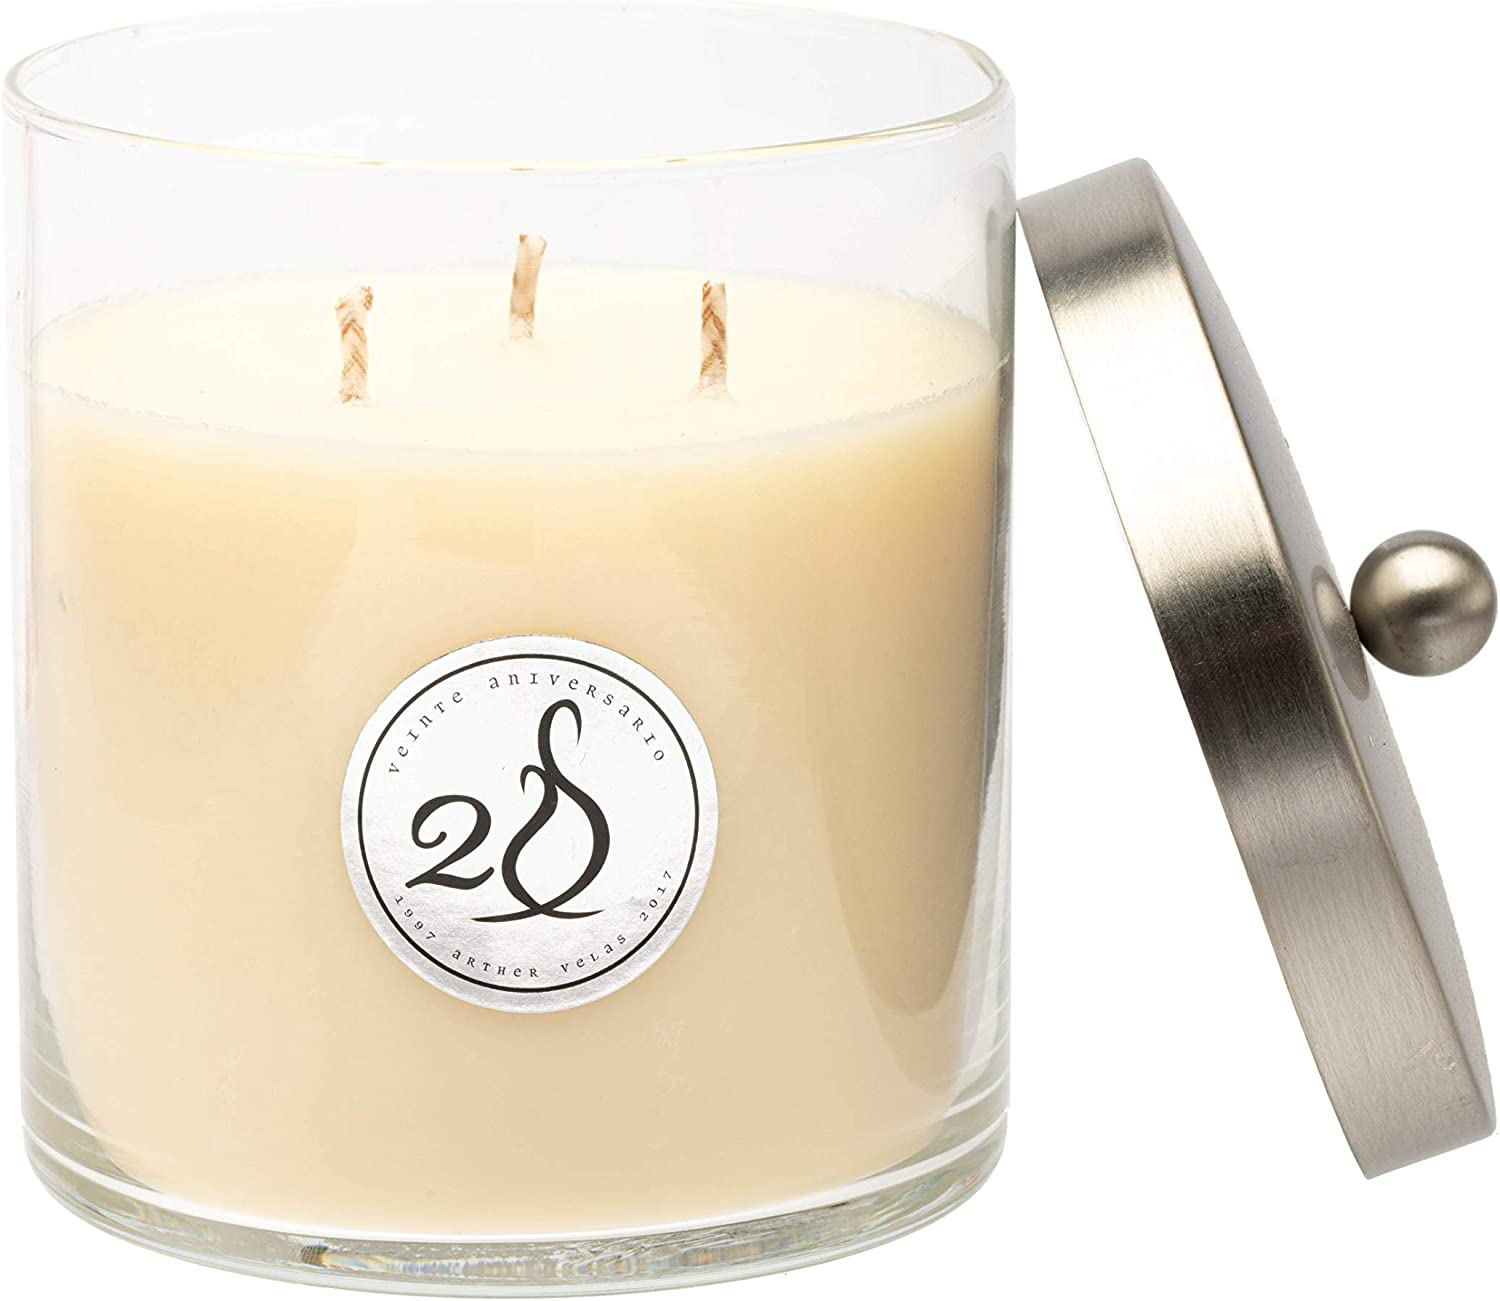 Simply Soson Vanilla Candle | 3 Wick Soy Candles | Healthy Organic Candles | Large Highly Scented Candles | Candles for Home Scented- 14 Oz